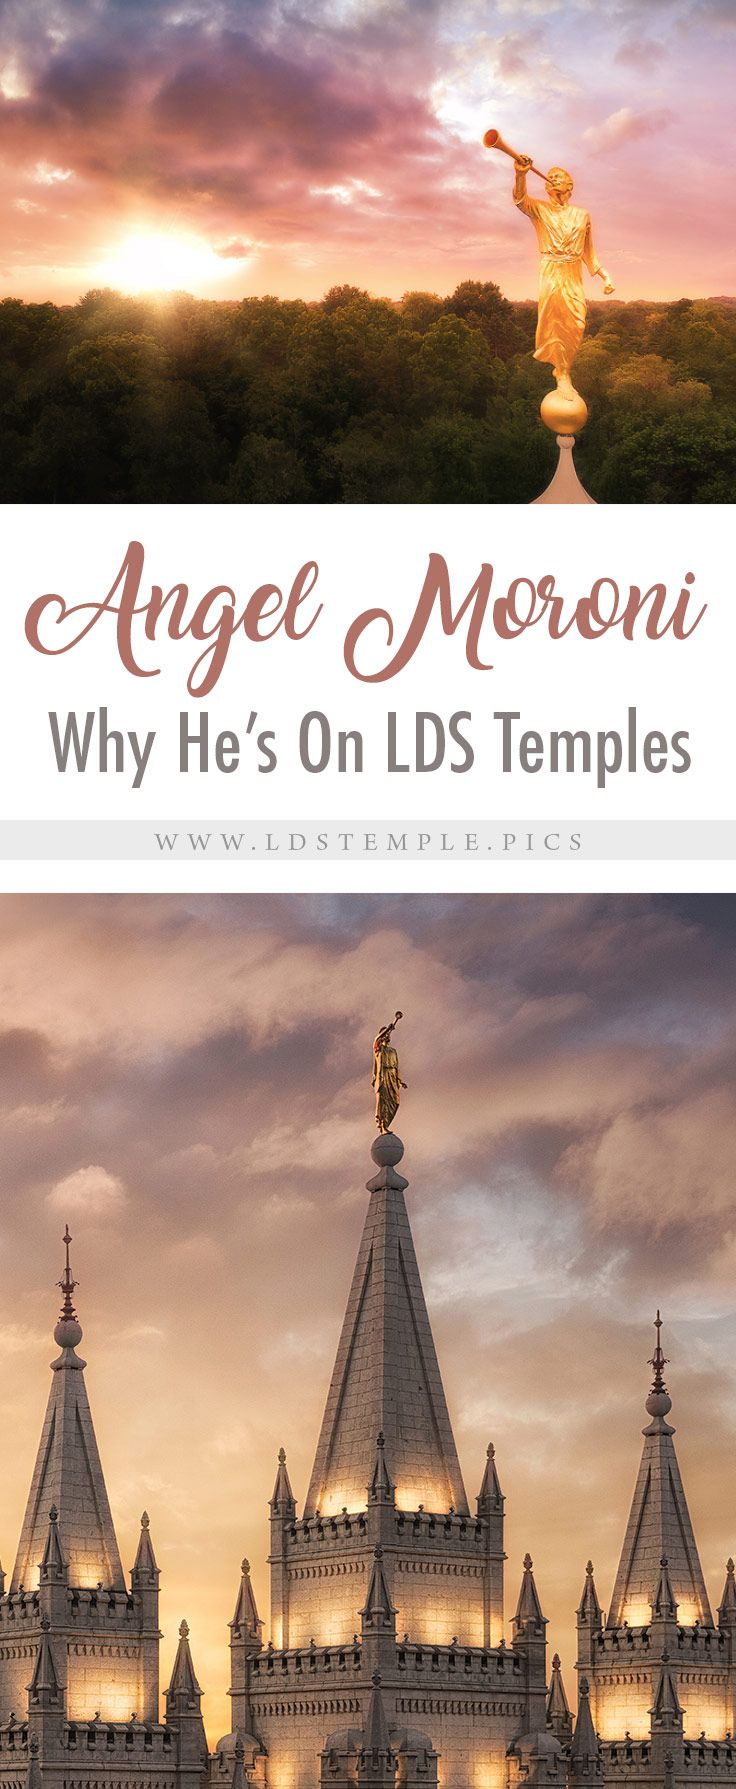 Why the Angel Moroni Tops Most LDS Temples